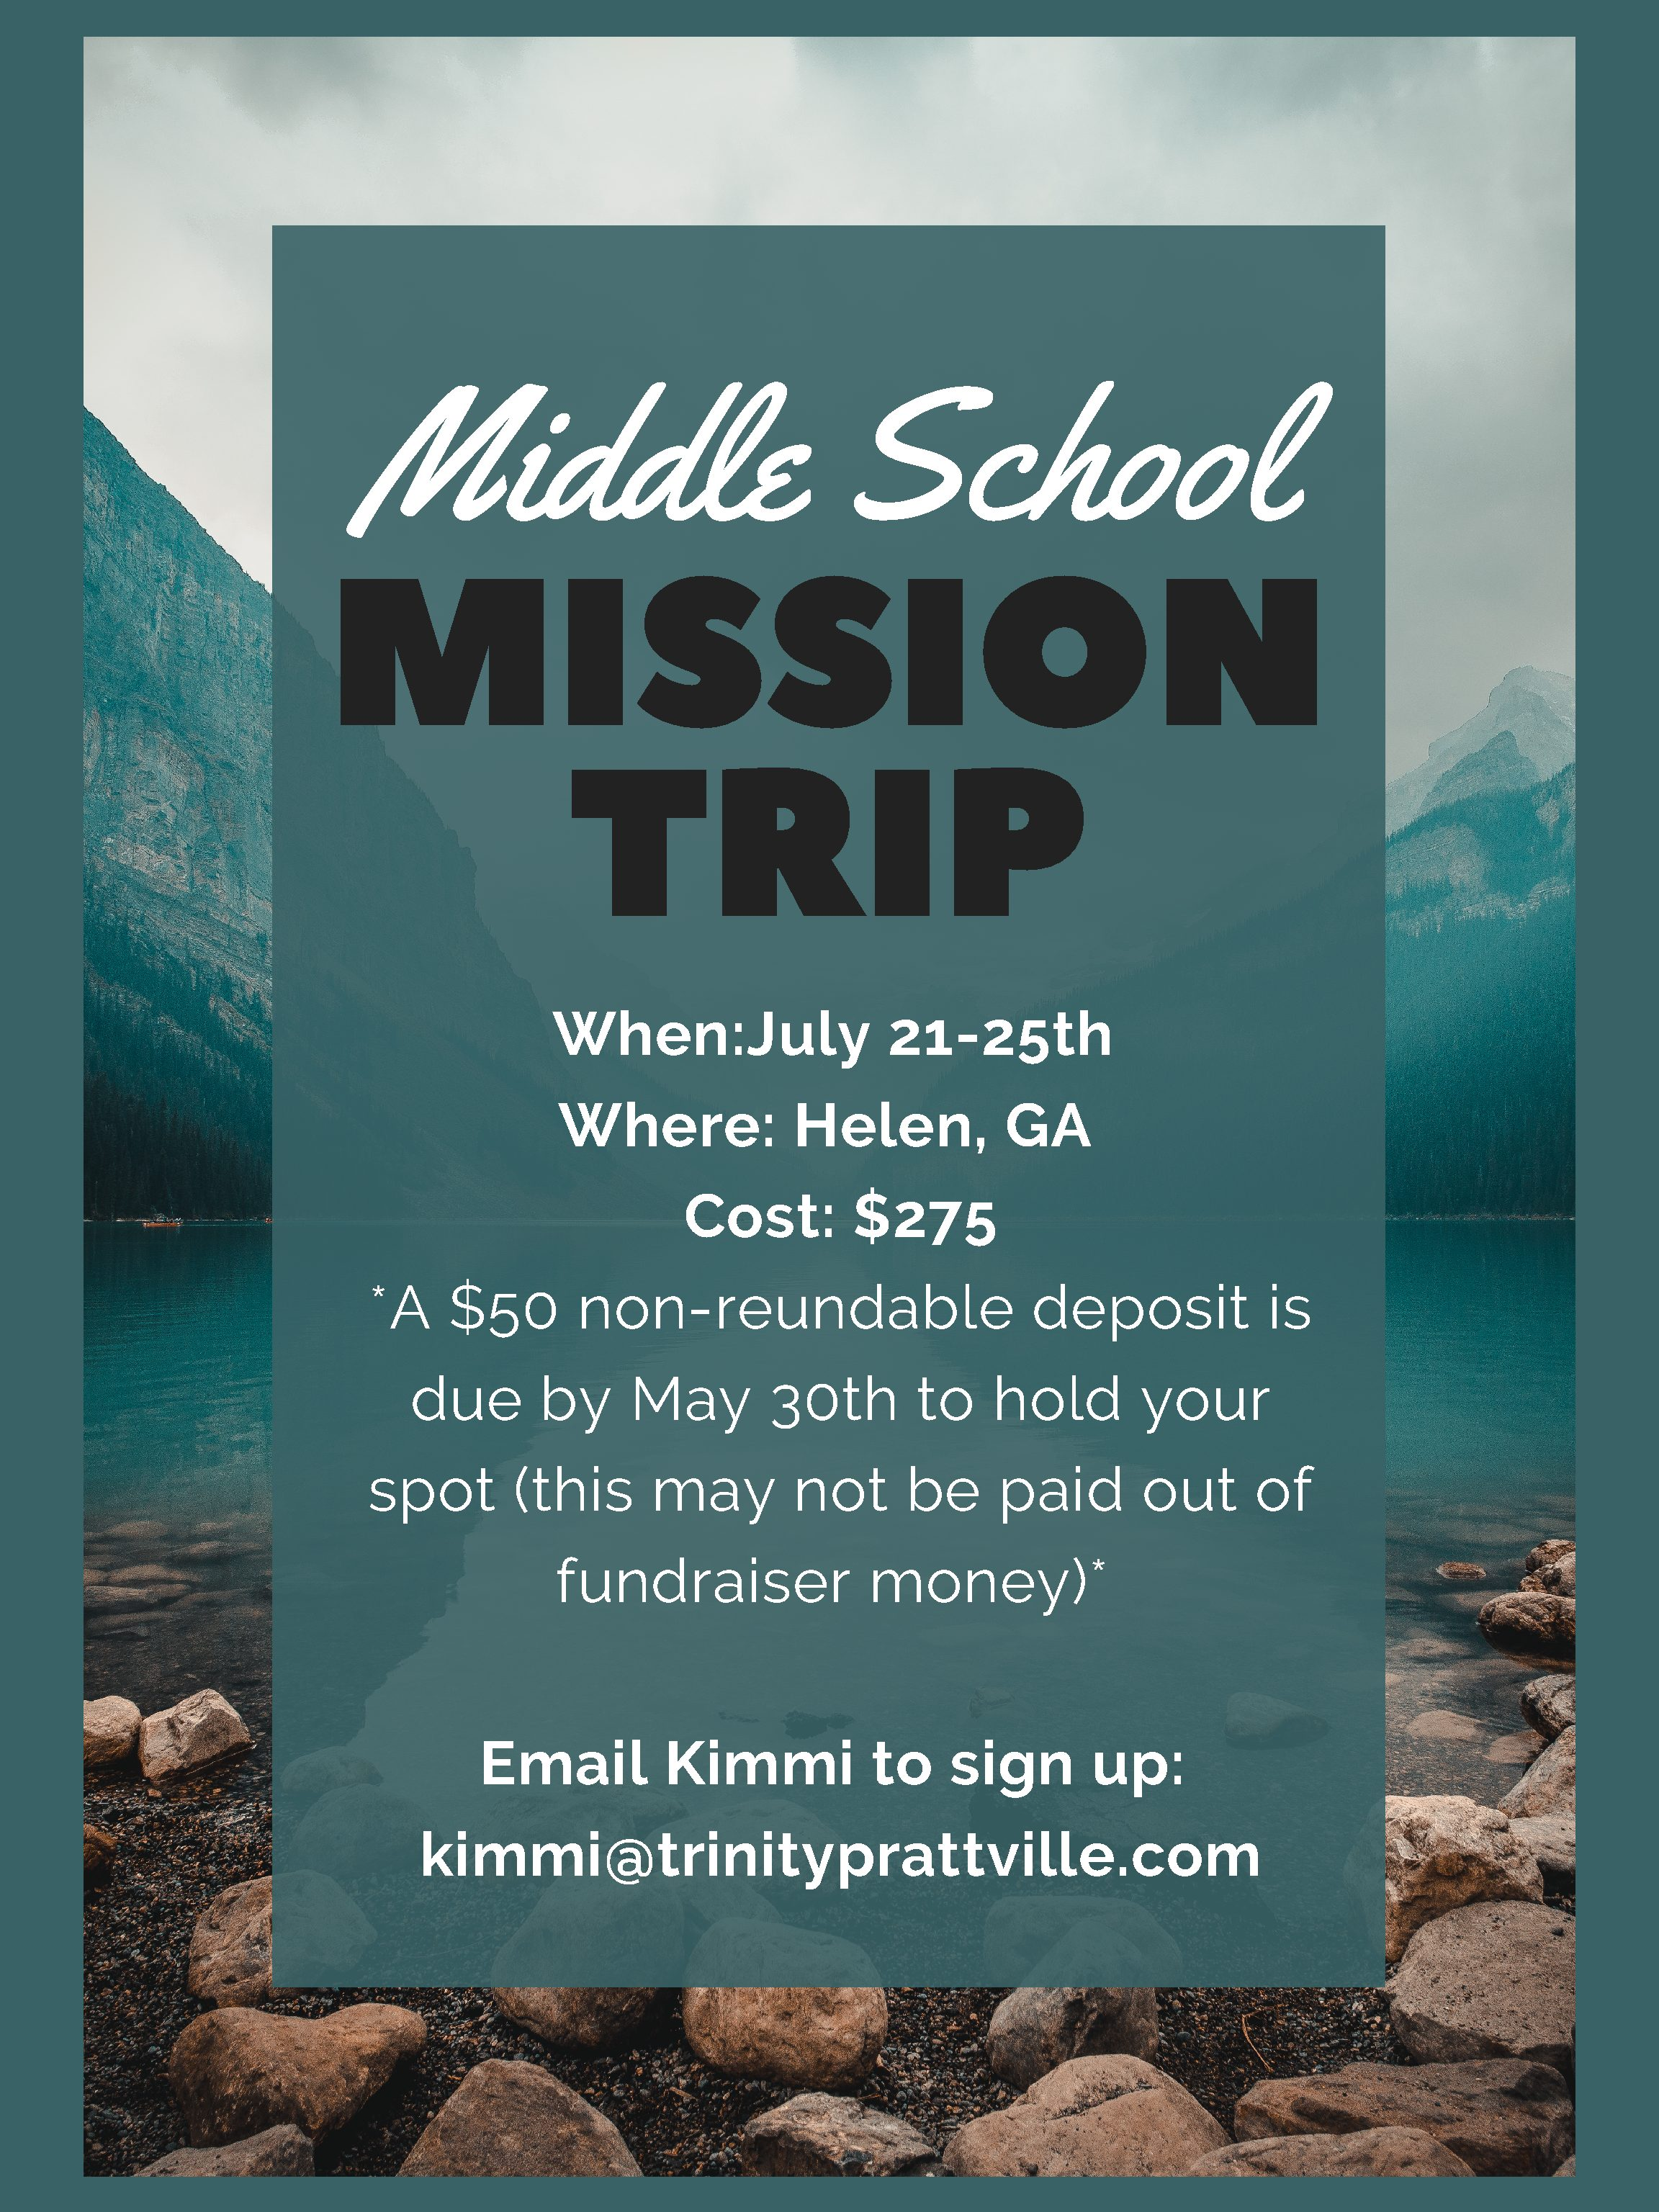 Middle School Mission Trip